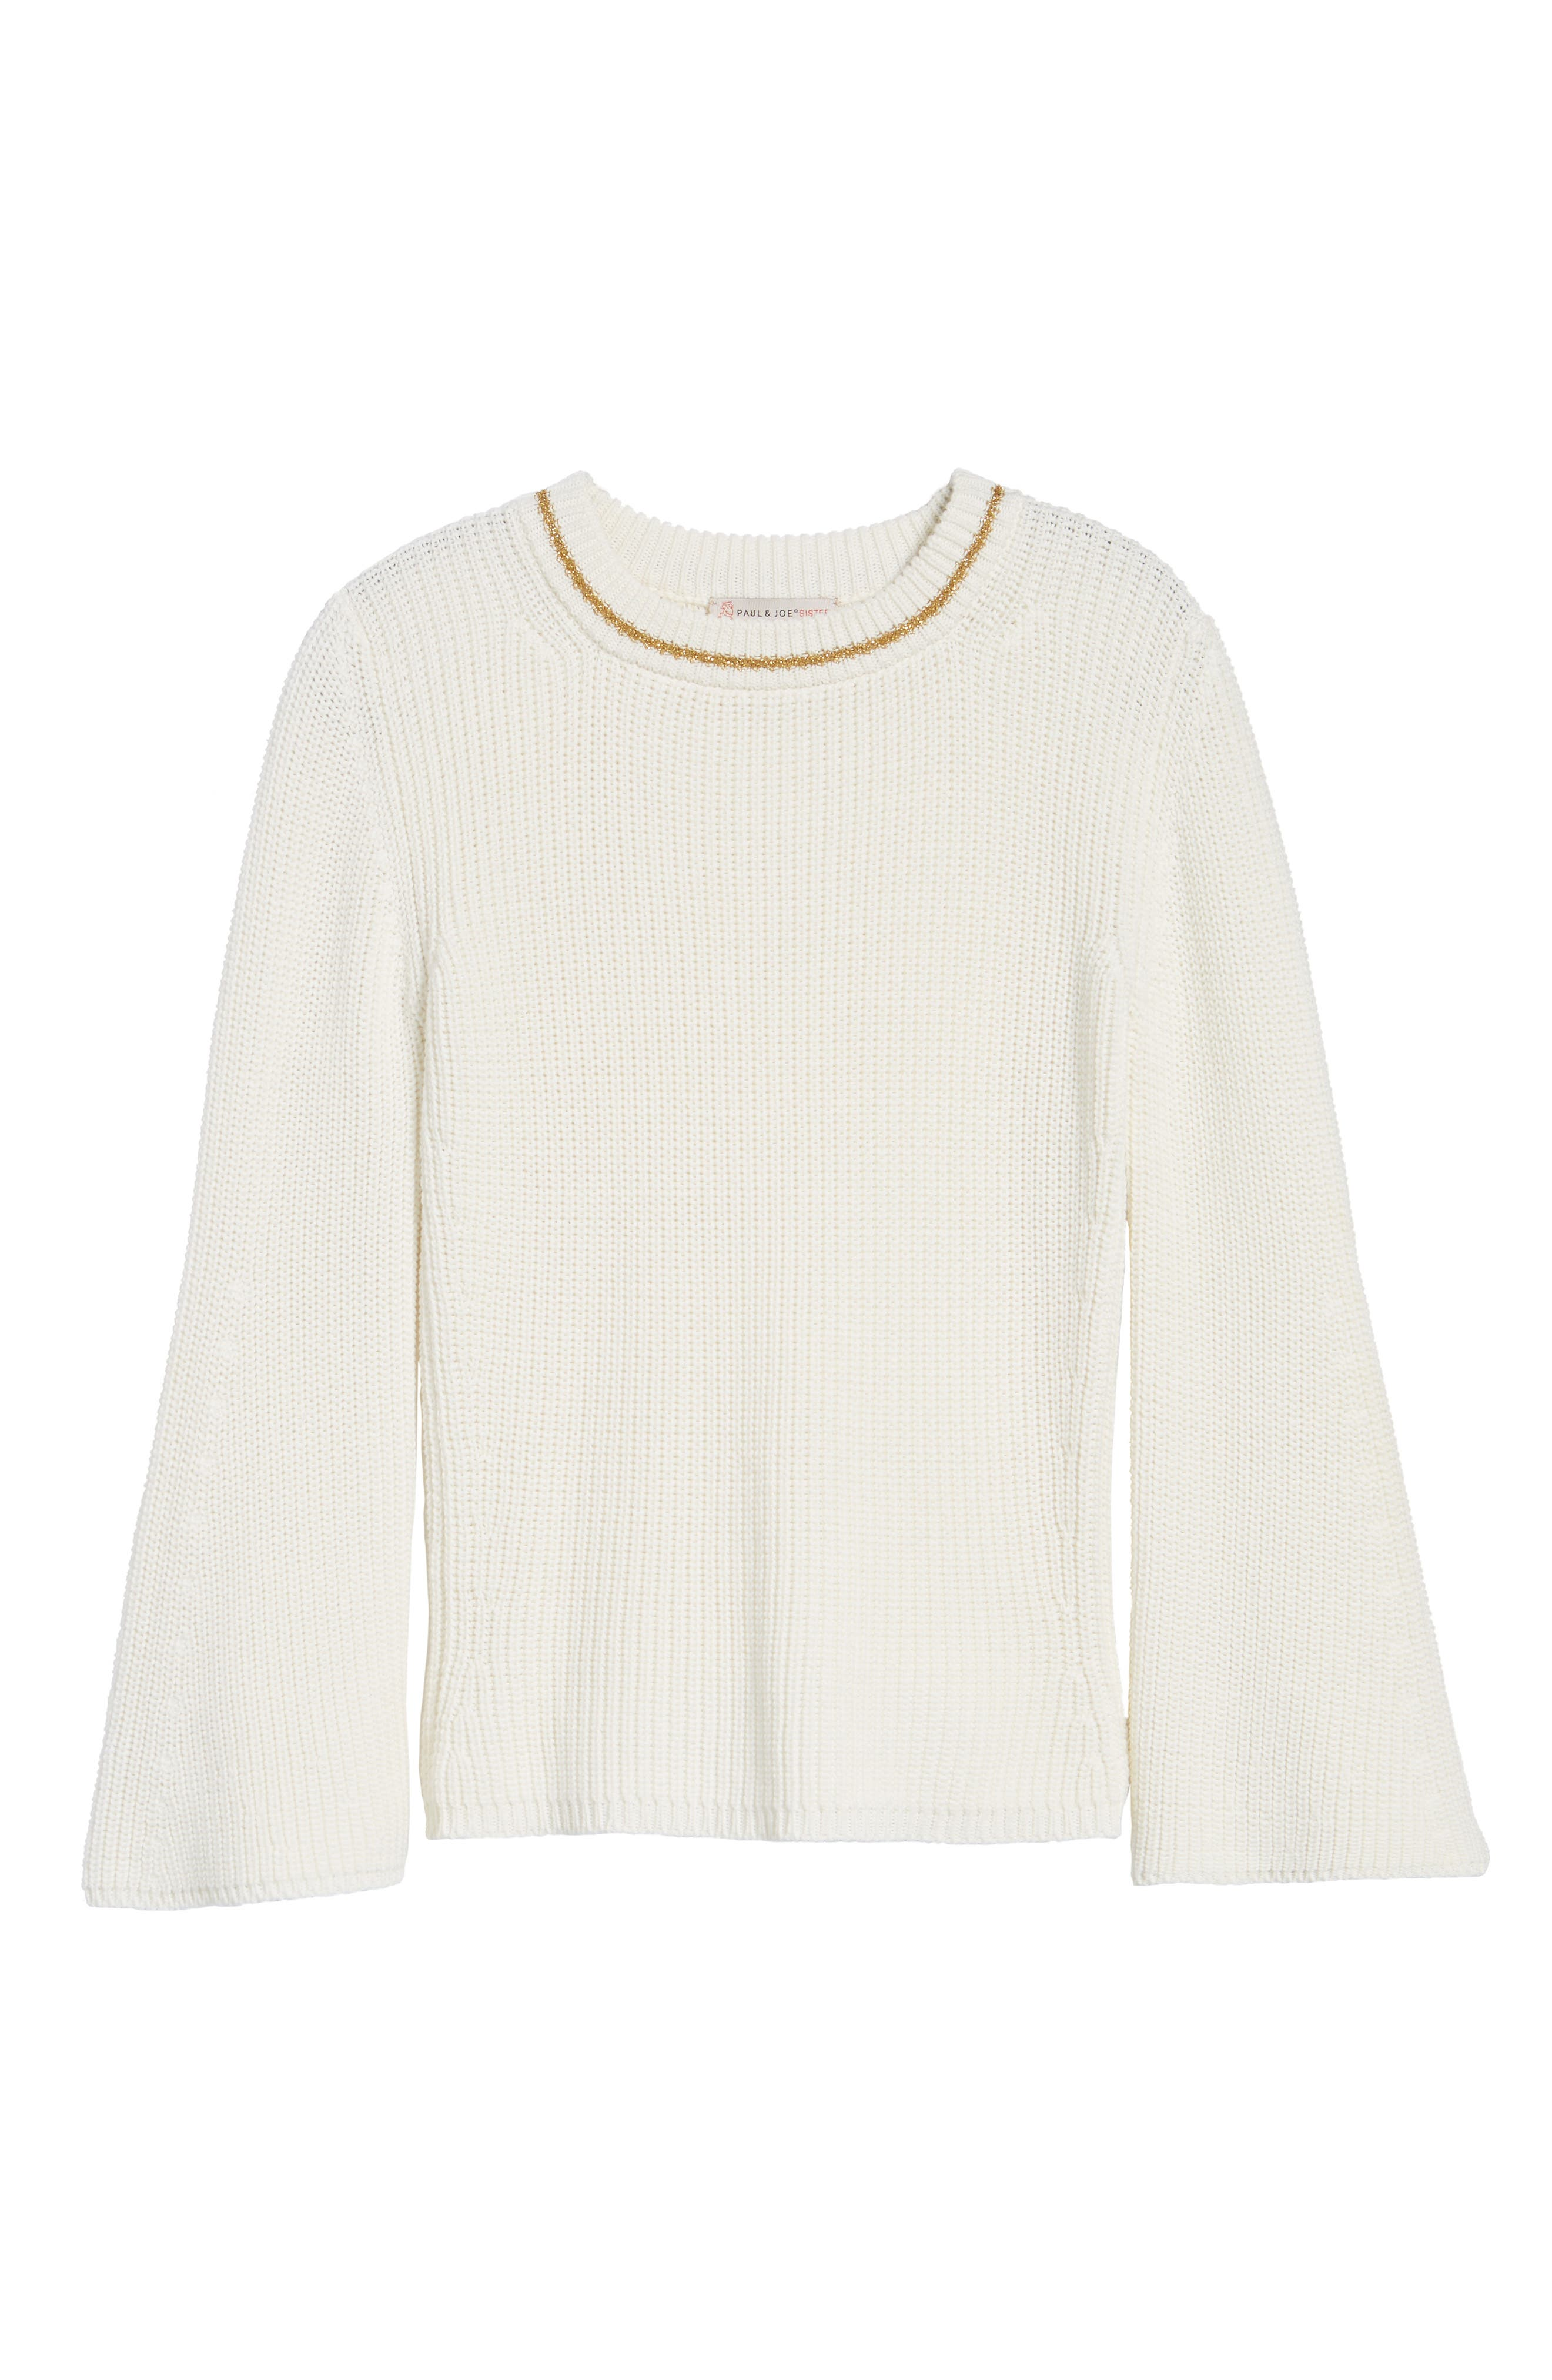 Coco Sweater,                             Alternate thumbnail 6, color,                             White